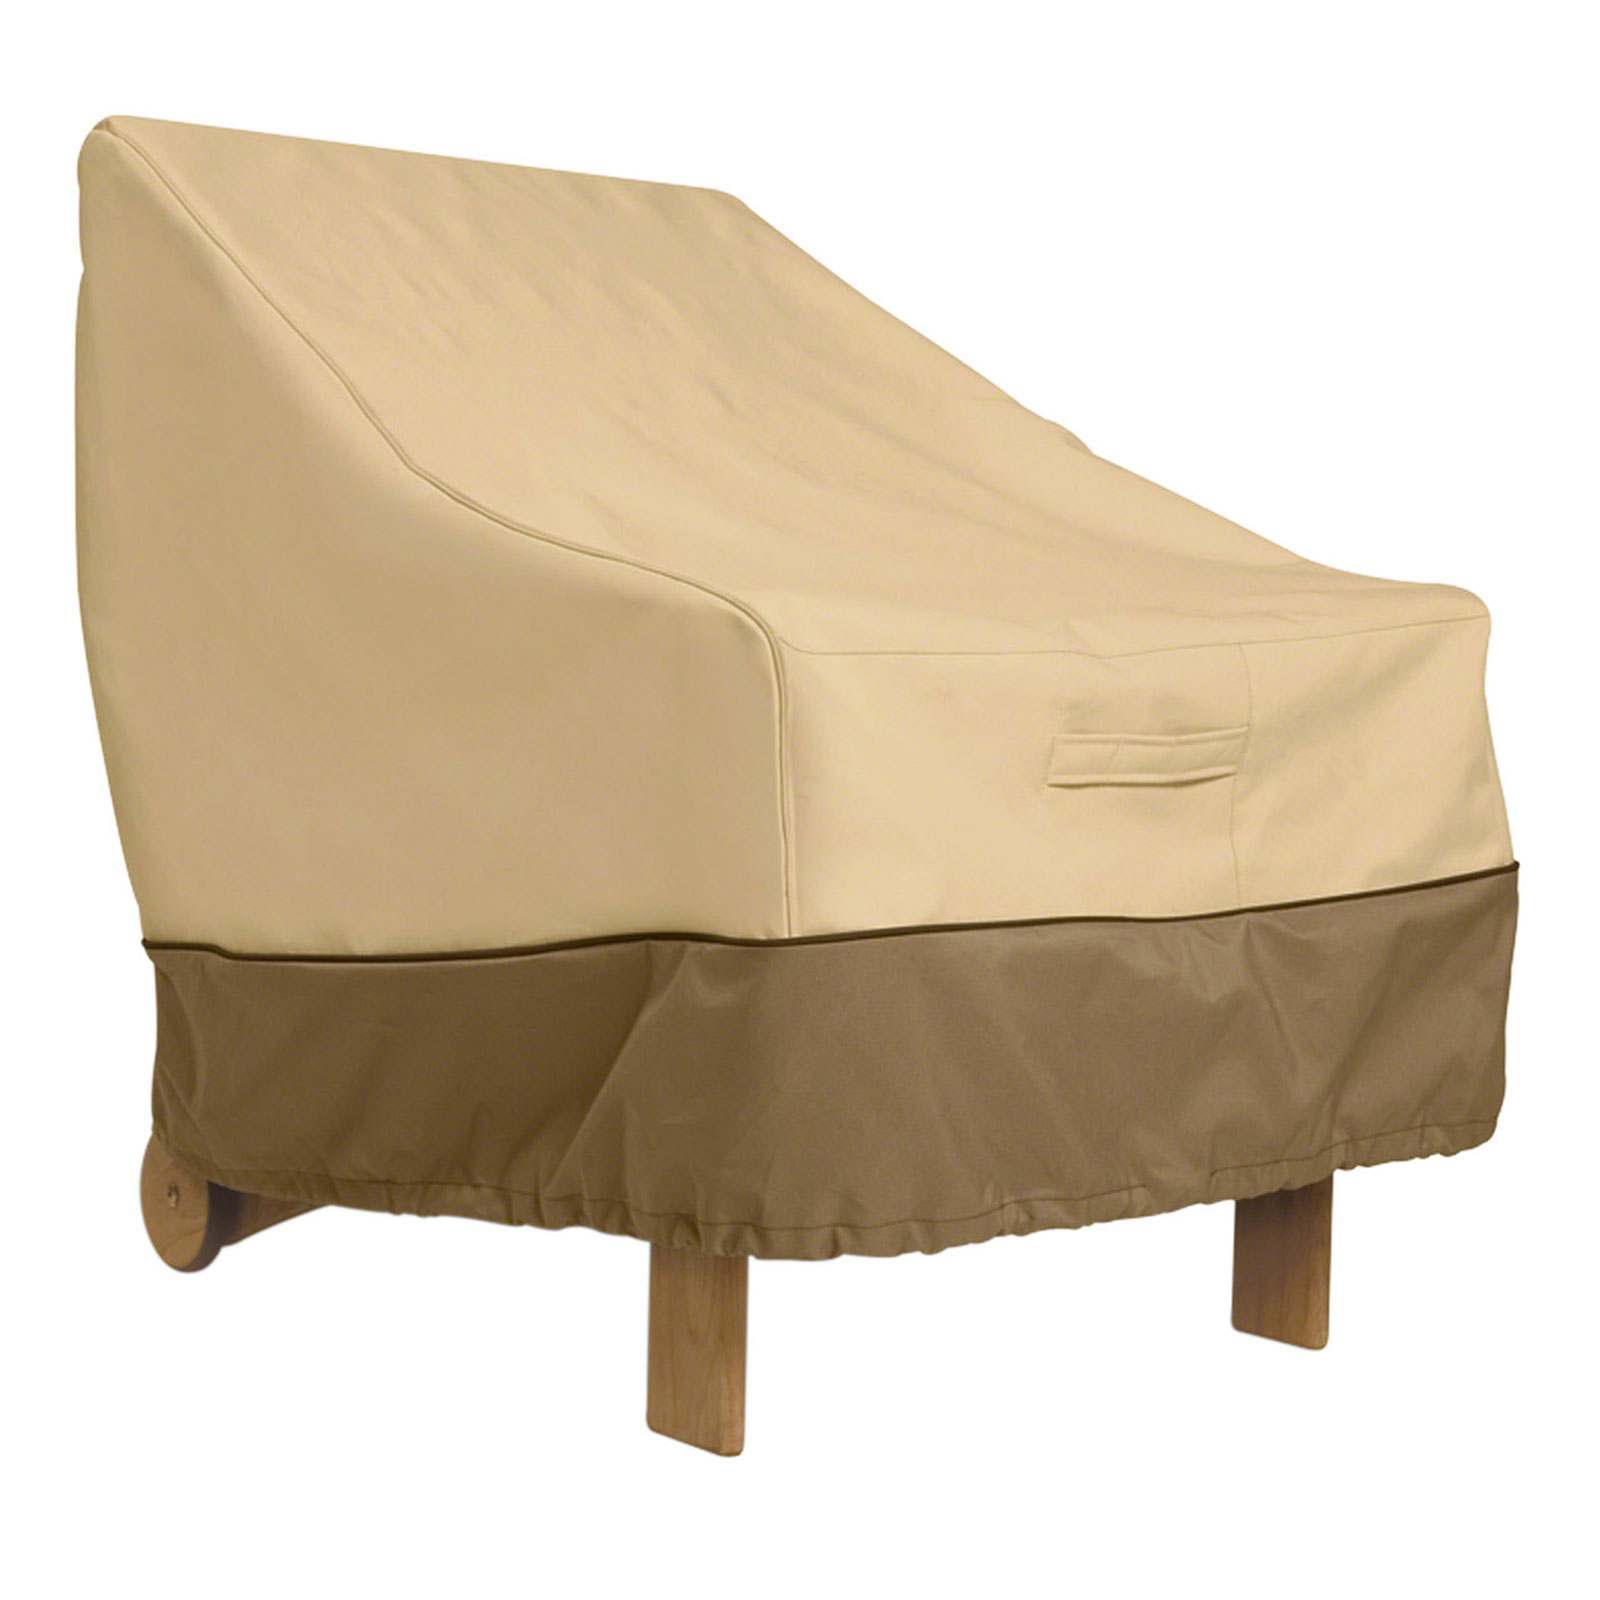 Lounge chair cover veranda in patio furniture covers for Patio furniture covers